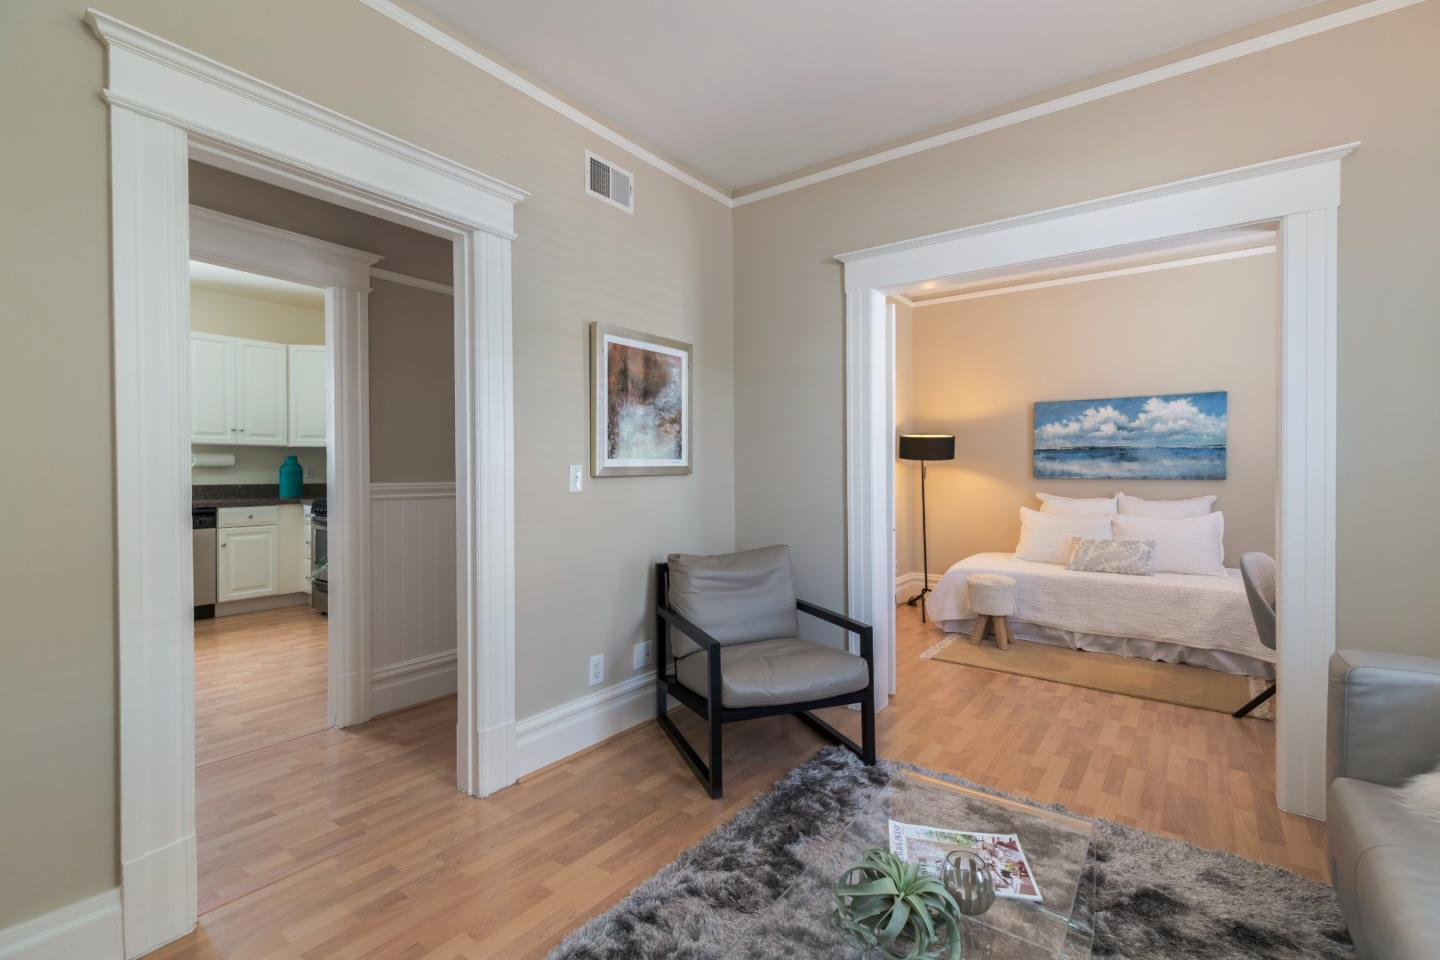 Additional photo for property listing at 2907 Octavia Street  San Francisco, California 94123 Estados Unidos